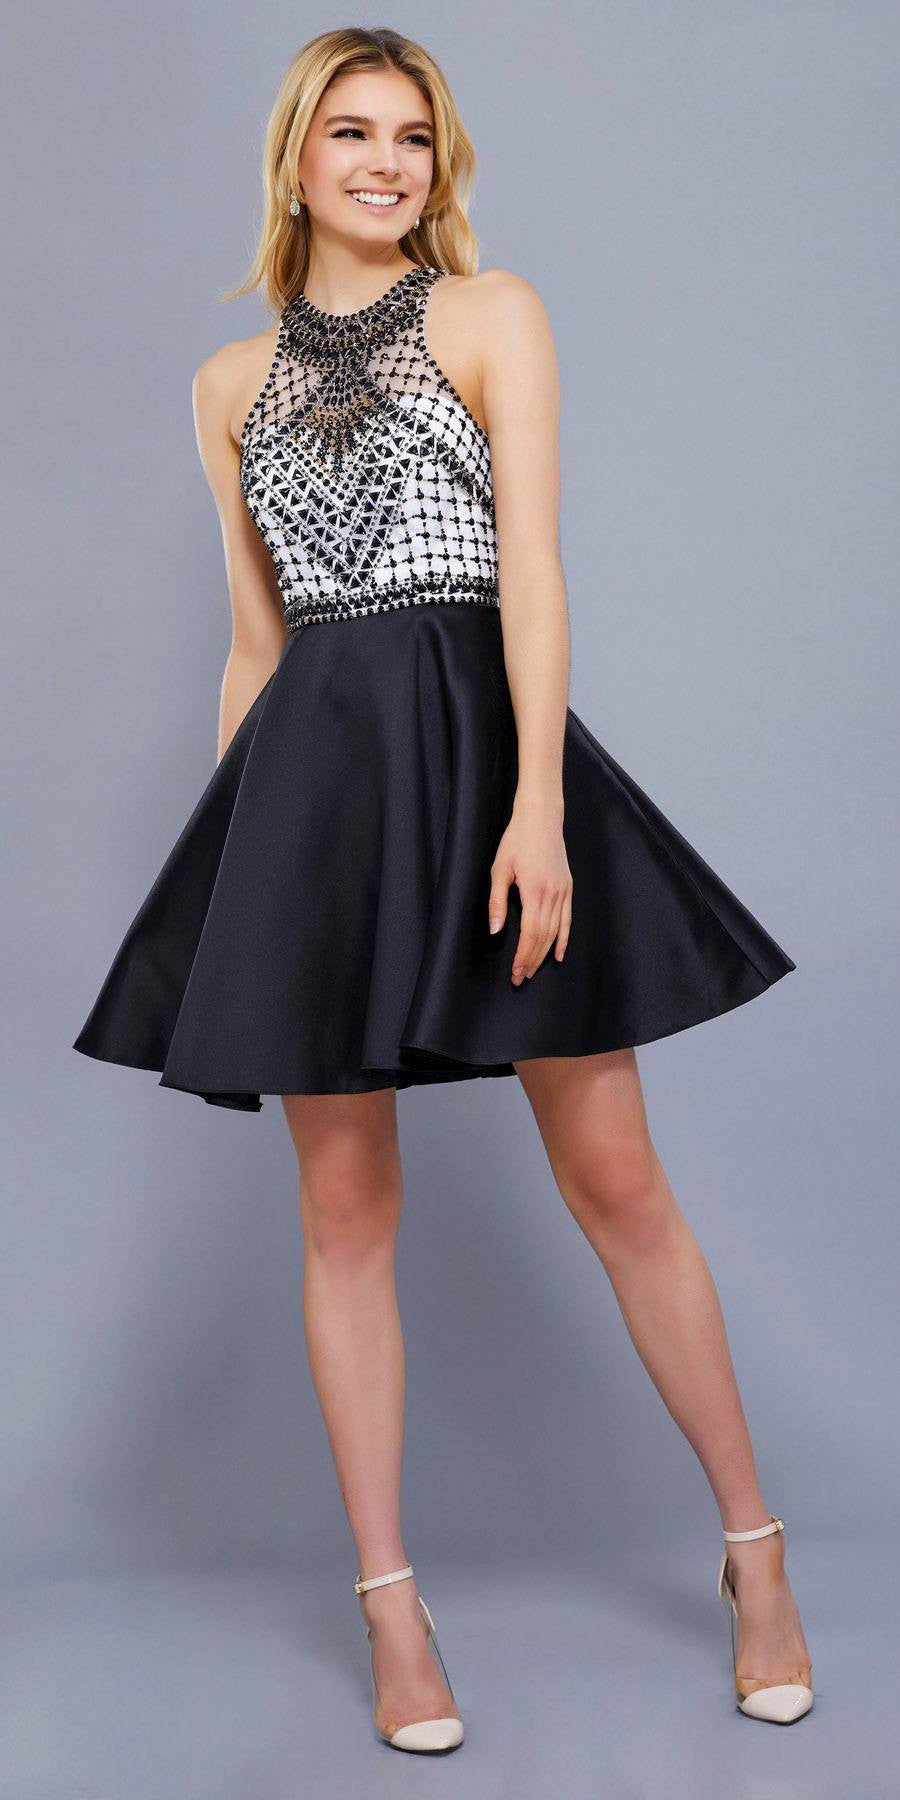 Illusion Beaded Top Halter Short Prom Dress A-Line Black